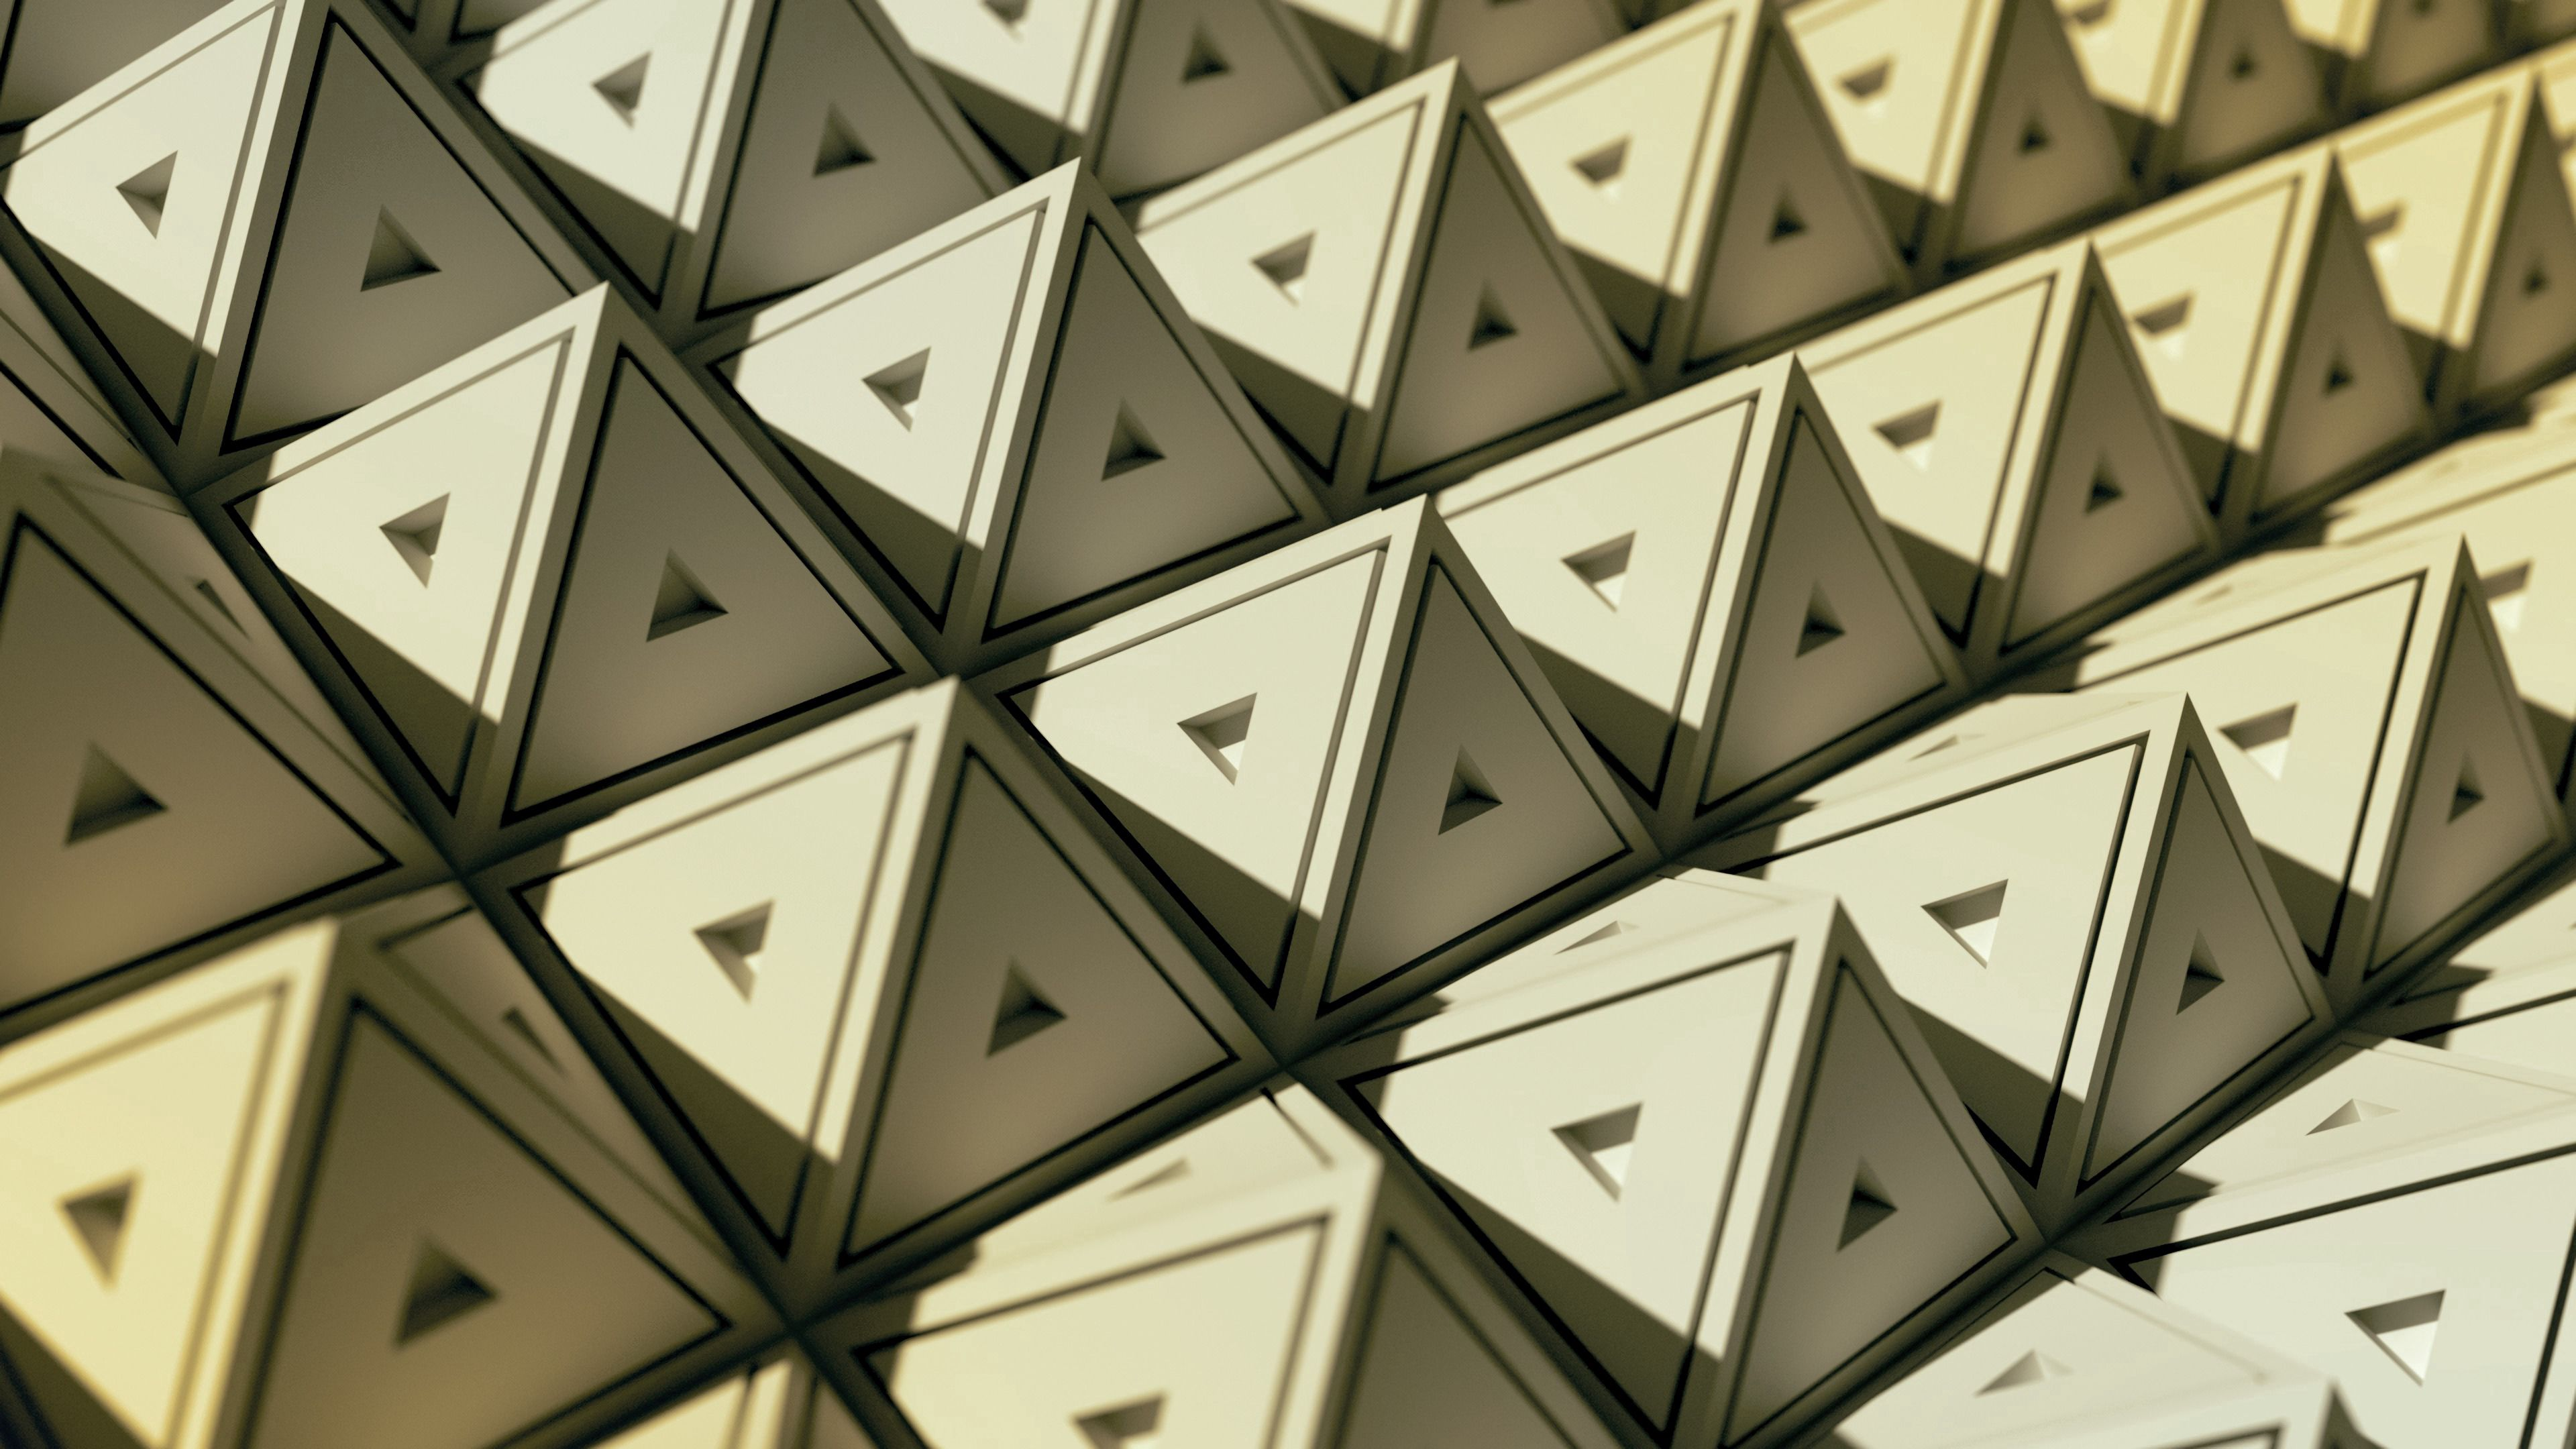 58927 download wallpaper Triangles, Geometry, 3D, Structure, Pyramids screensavers and pictures for free